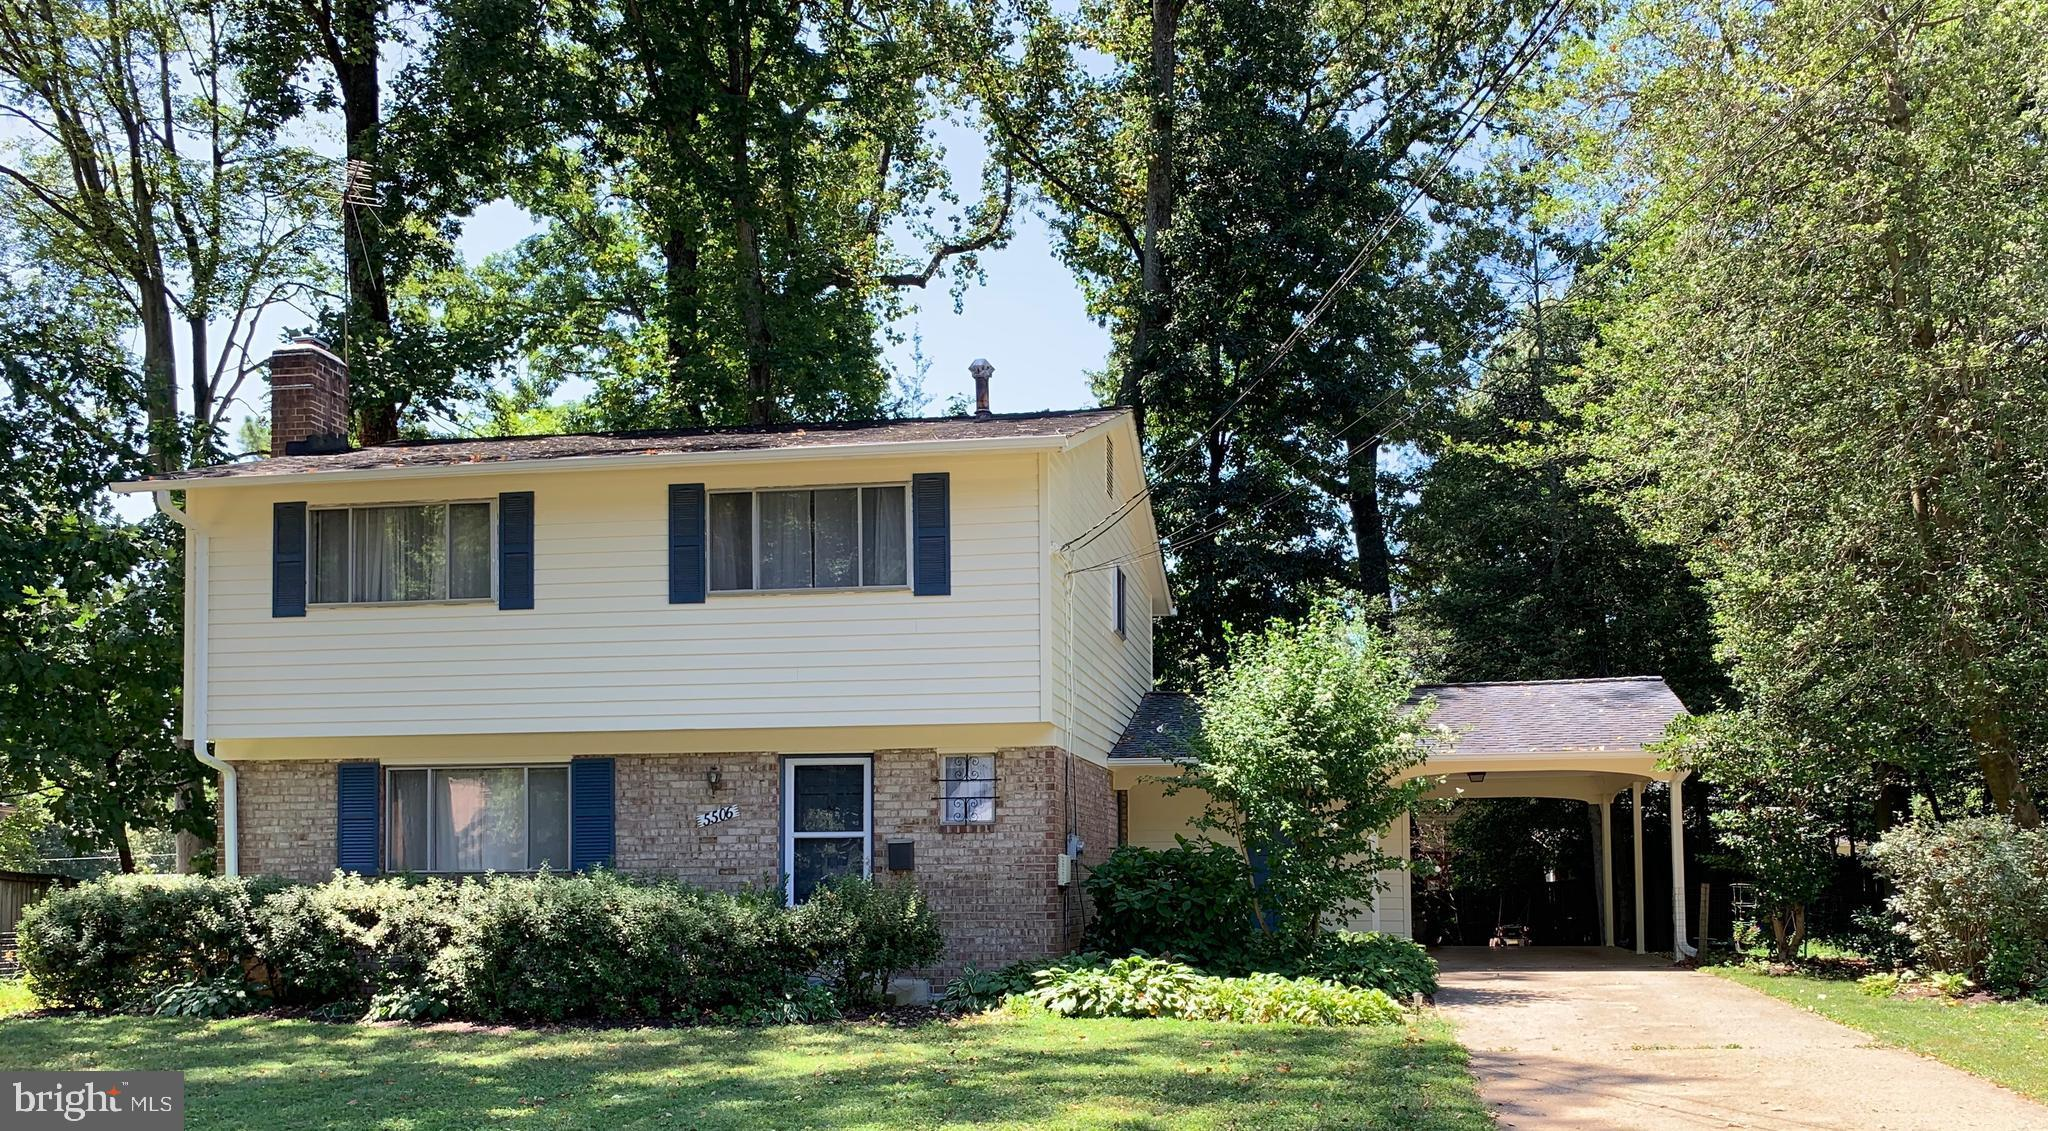 $10,000 Reduction! Charming 4 bed, 2 and a half bath Queen Model colonial in highly sought Kings Park neighborhood. Remodeled kitchen includes SS appliances and granite counter tops. Hardwood floors throughout main and upper level bedrooms. Upstairs Master equipped with full en suite bath. Freshly painted finished basement with stainless steel-lined fireplace.  Screened-in back patio for you to enjoy.  Move-in ready or make it your own!